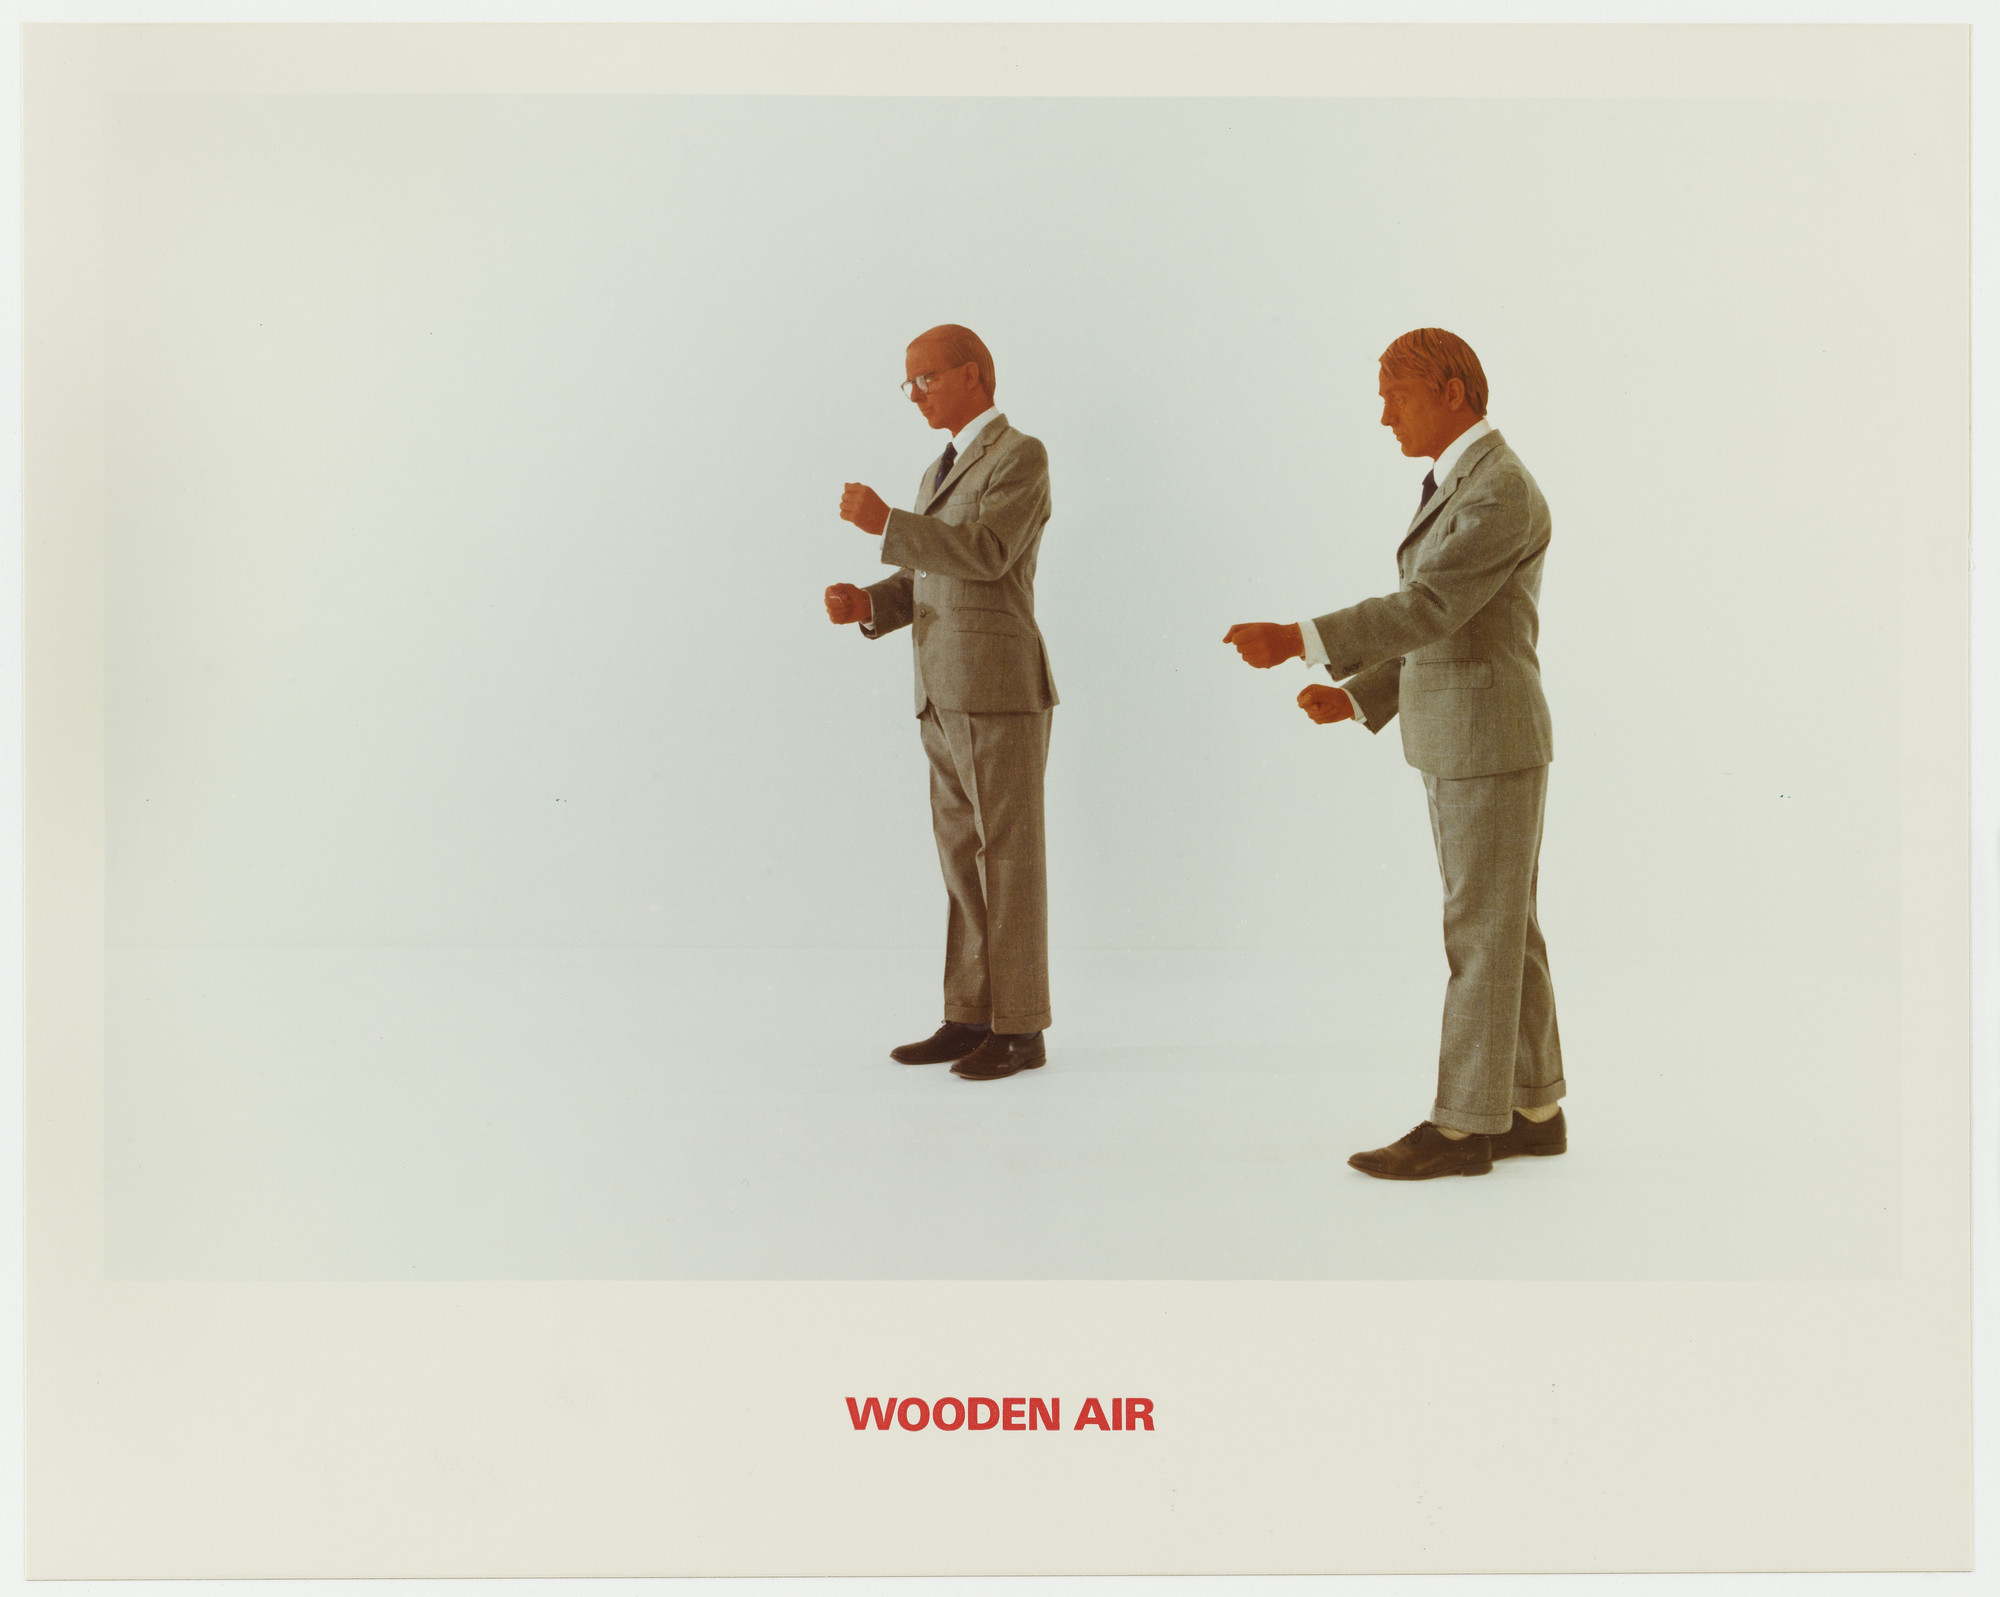 Gilbert & George. Wooden Air. 1975